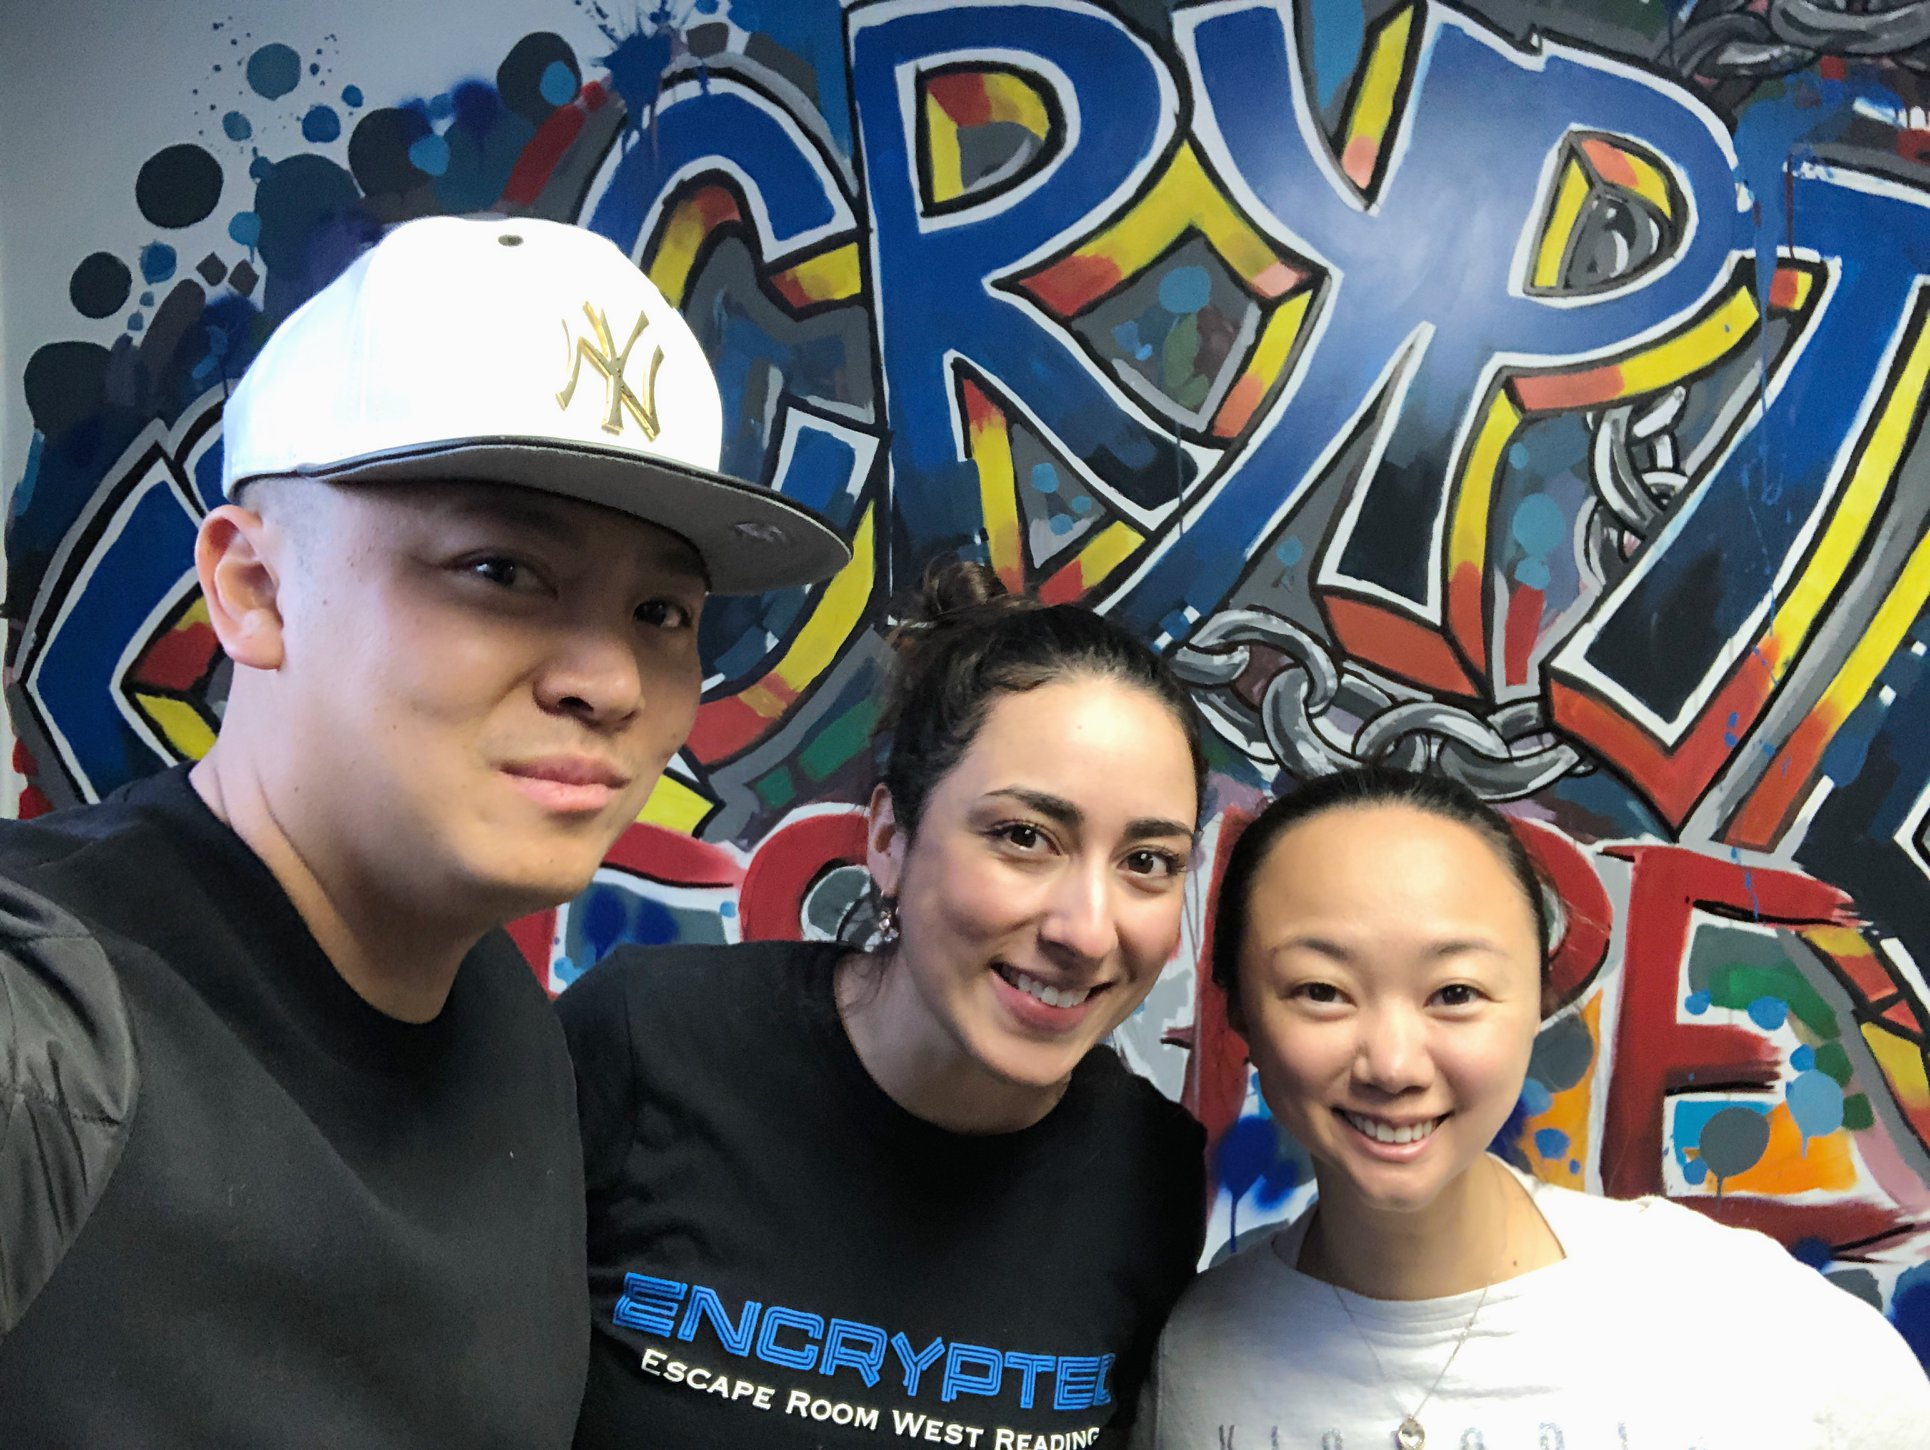 Encrypted Escape Room West Reading